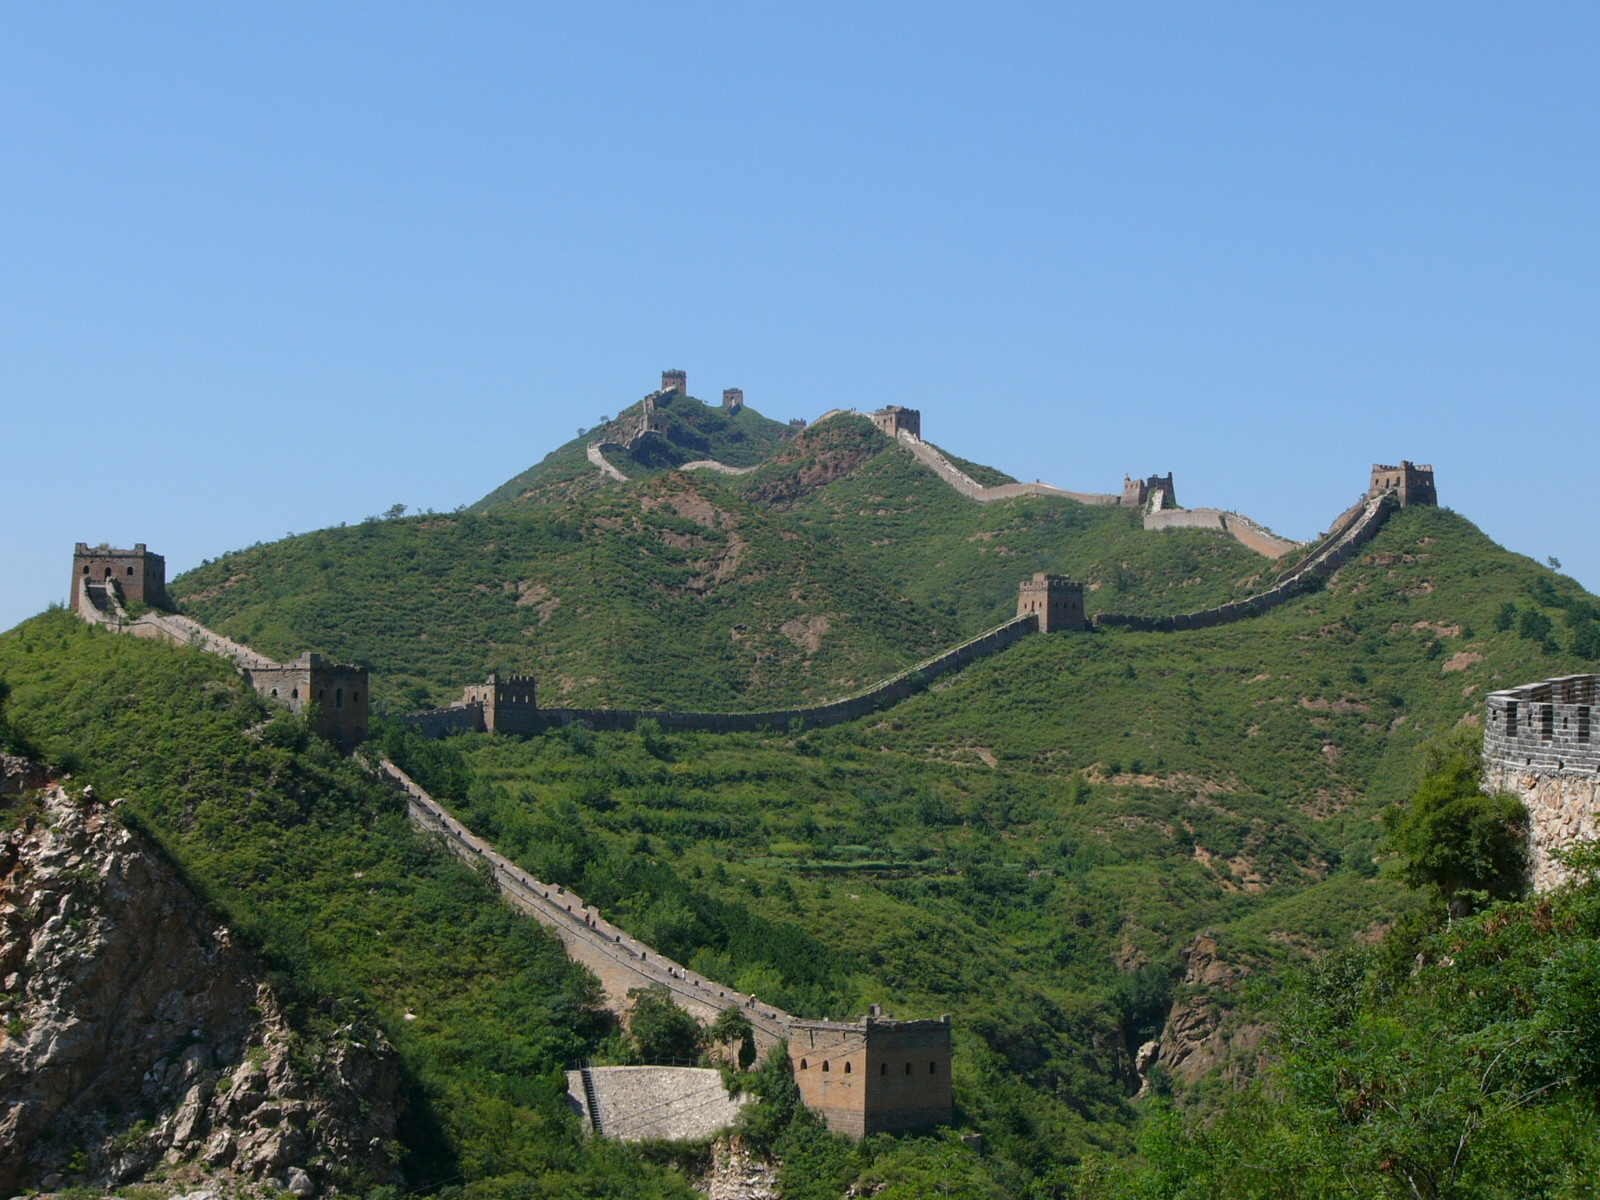 Beijing. Great wall. Simatai section